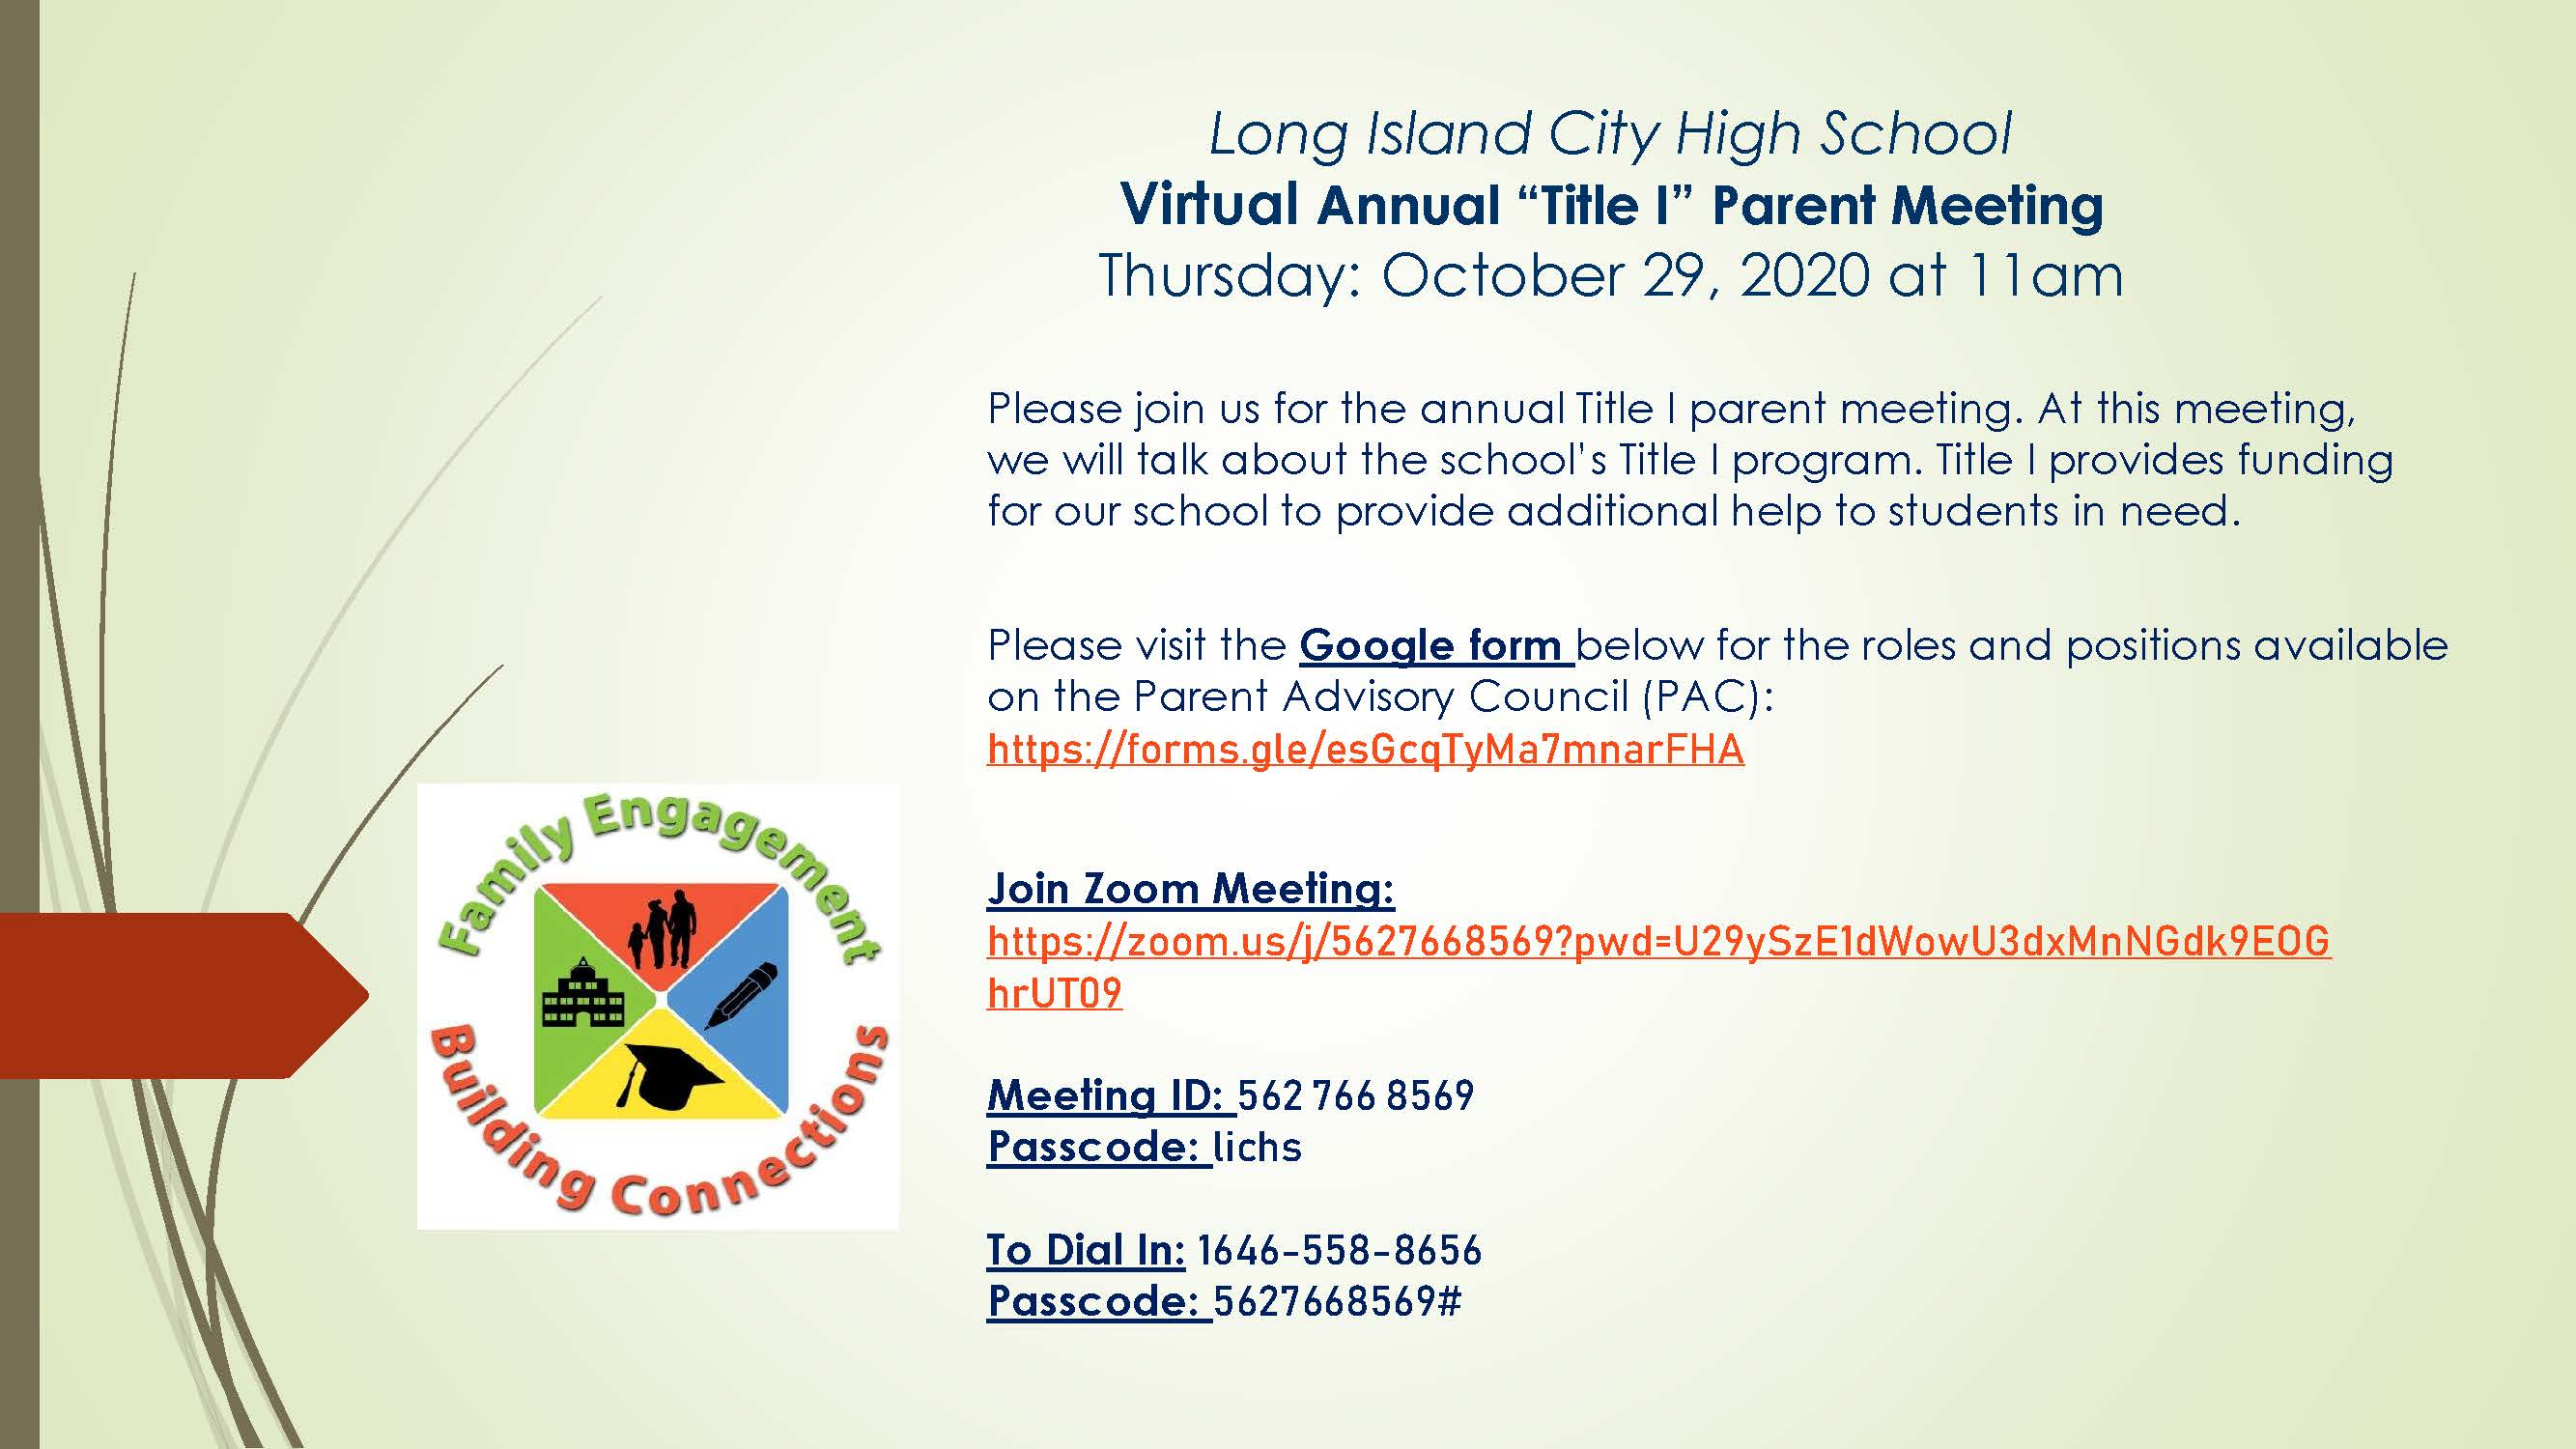 Virtual Annual Title I Parent Meeting flyer